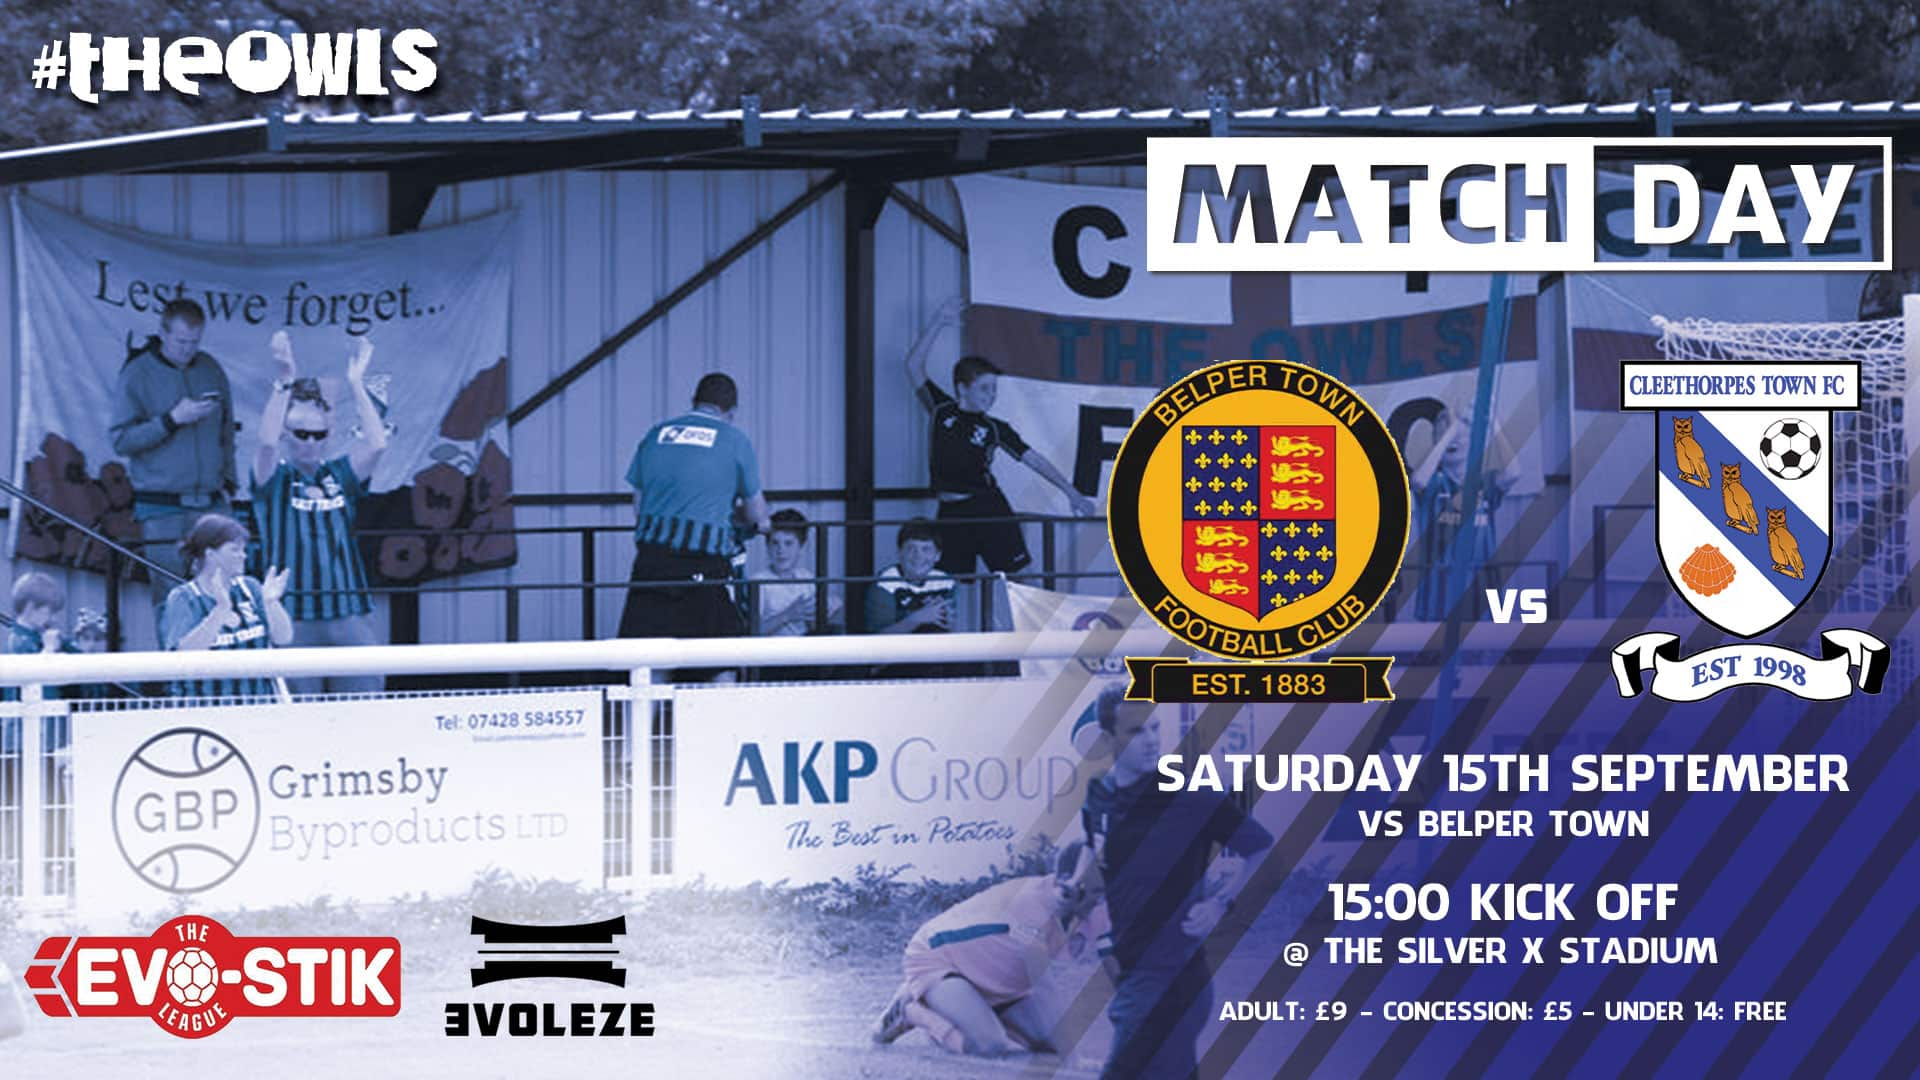 match day – Cleethorpes Town FC